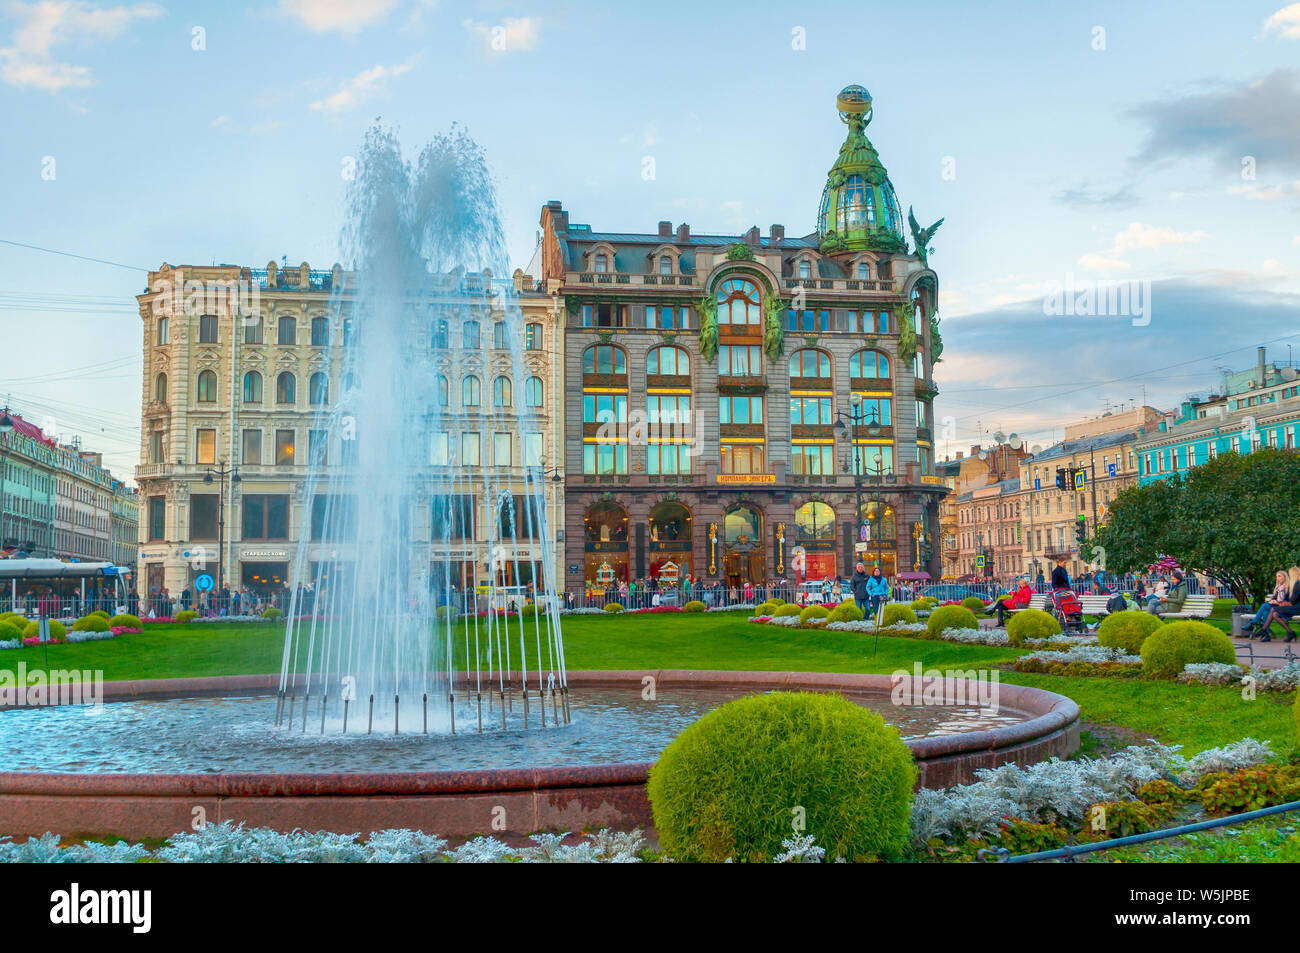 St Petersburg, Russia -October 3, 2016. Zinger House on Nevsky Prospect in the historic center of the city and fountain on the foreground. Autumn even Stock Photo